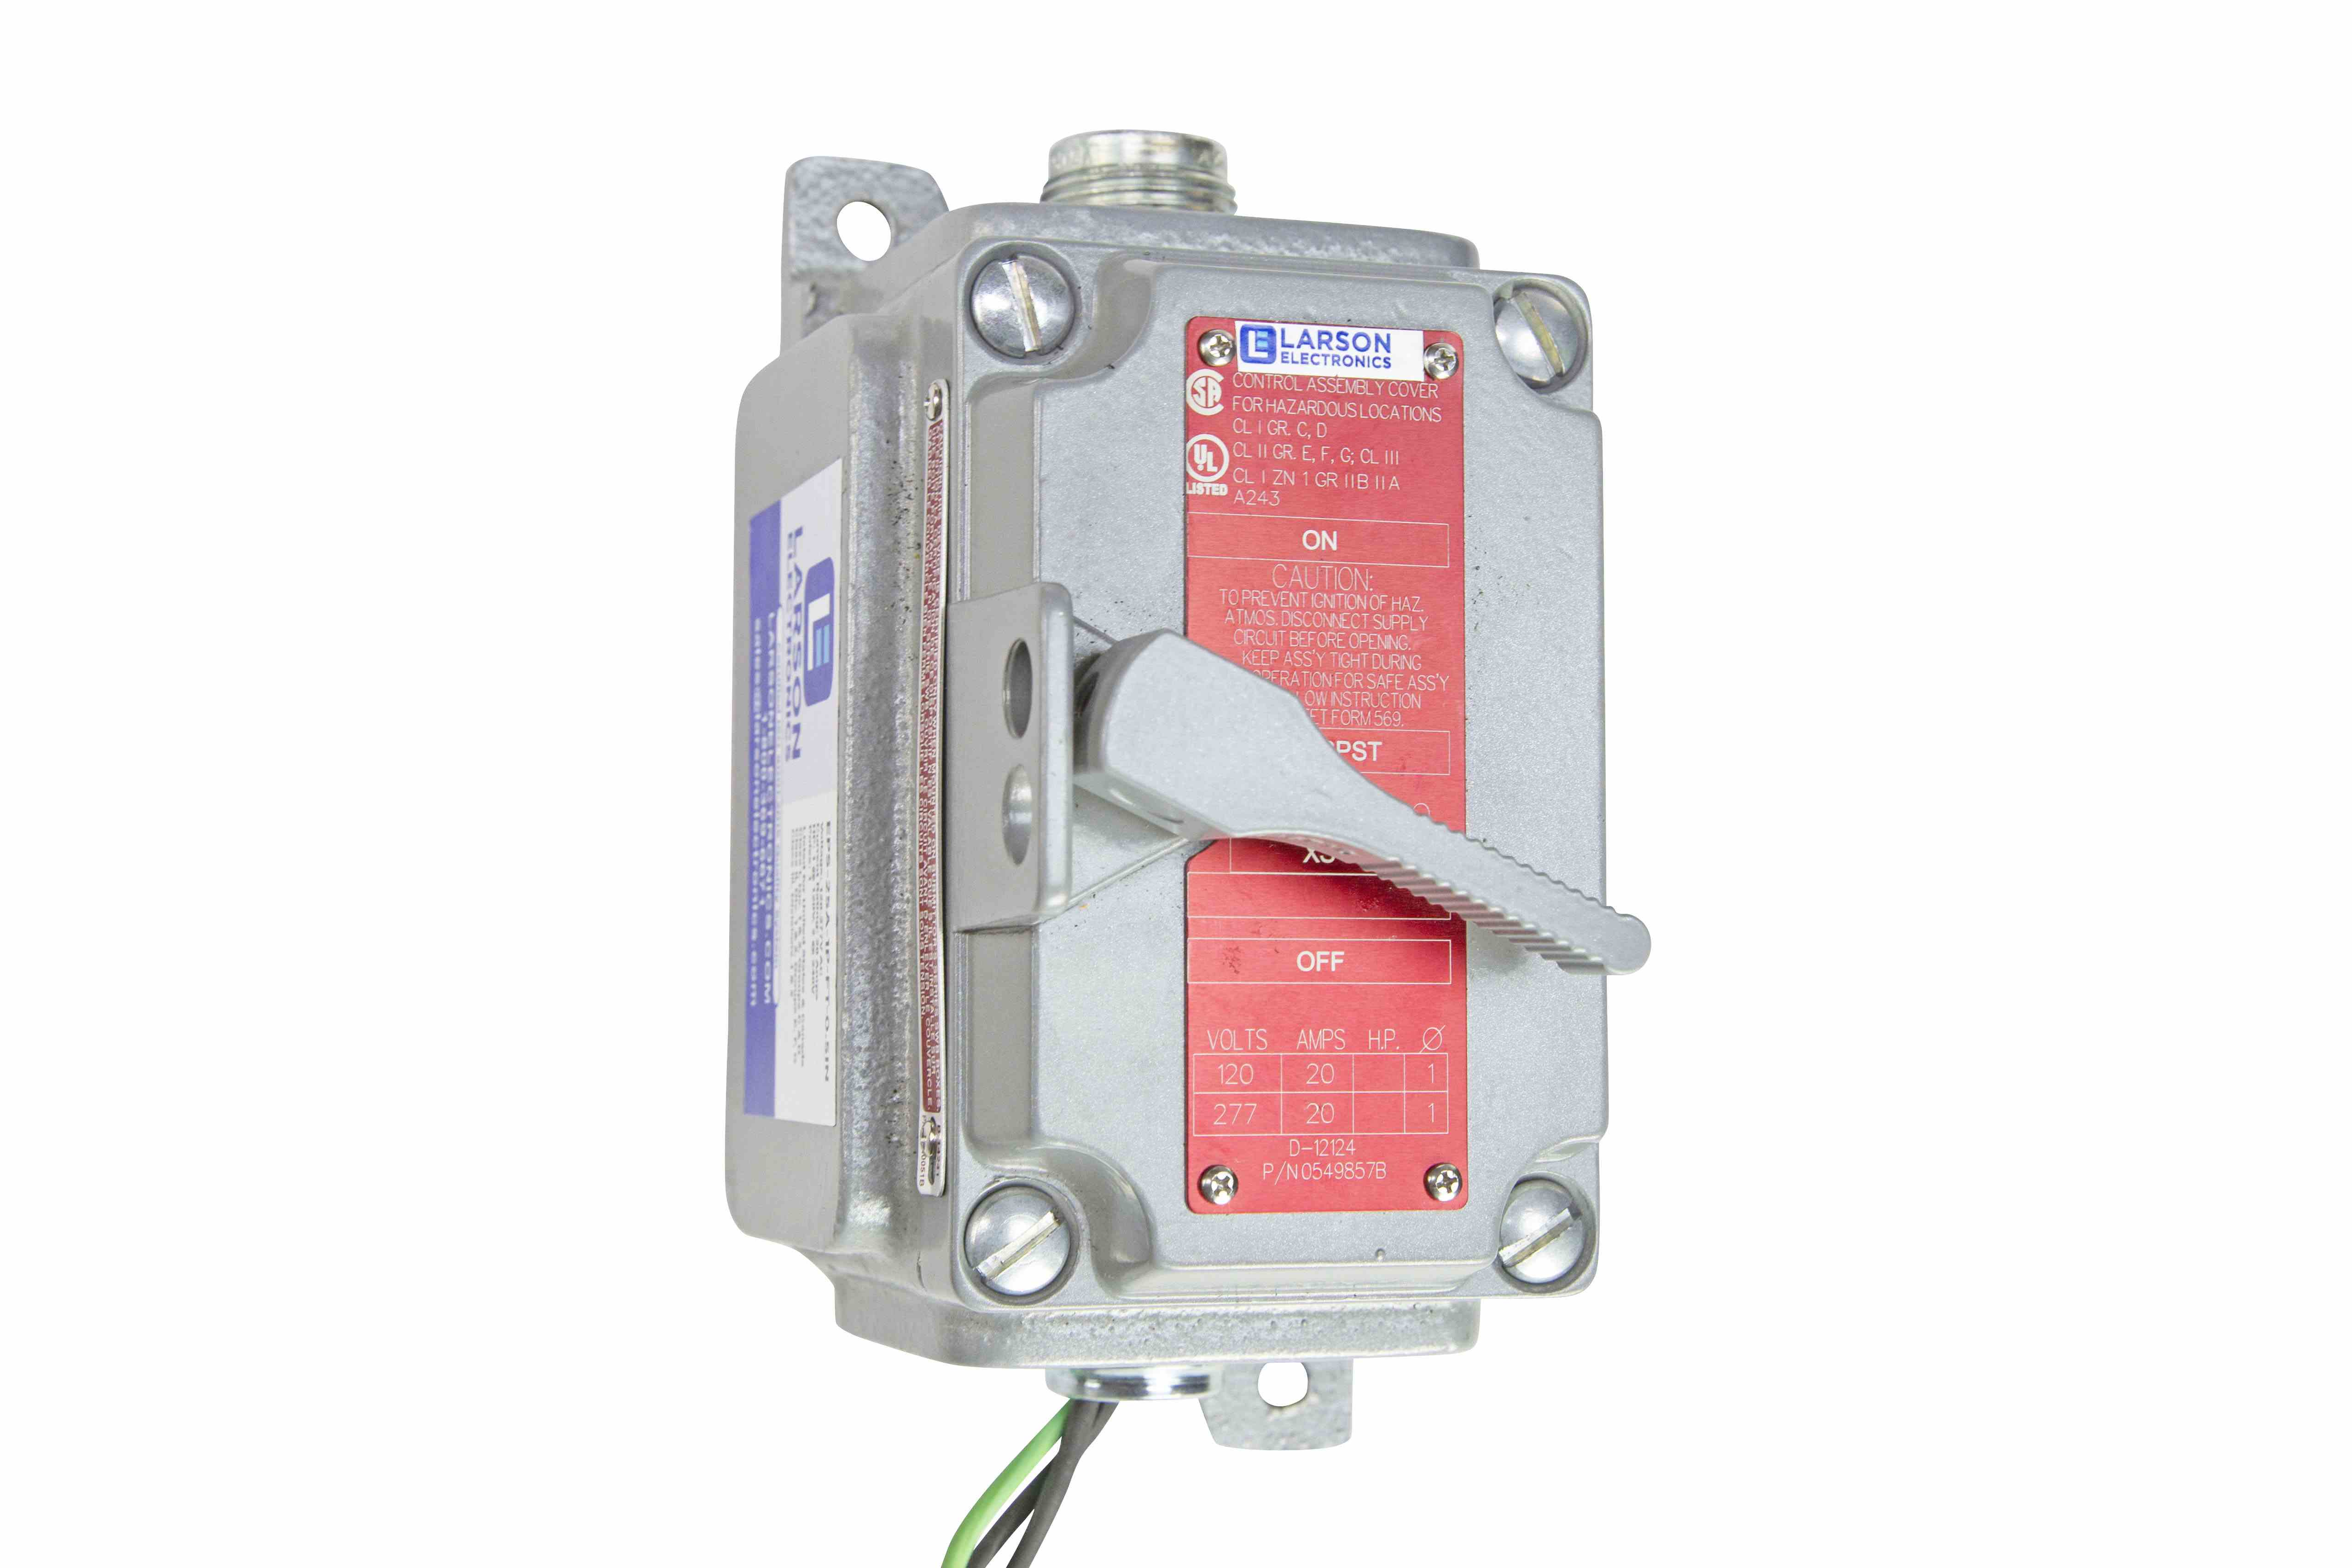 Explosion Proof On/Off Switch - Class I, Div  1 & 2 - Class II, Div  1 & 2  - 20 Amp Rated